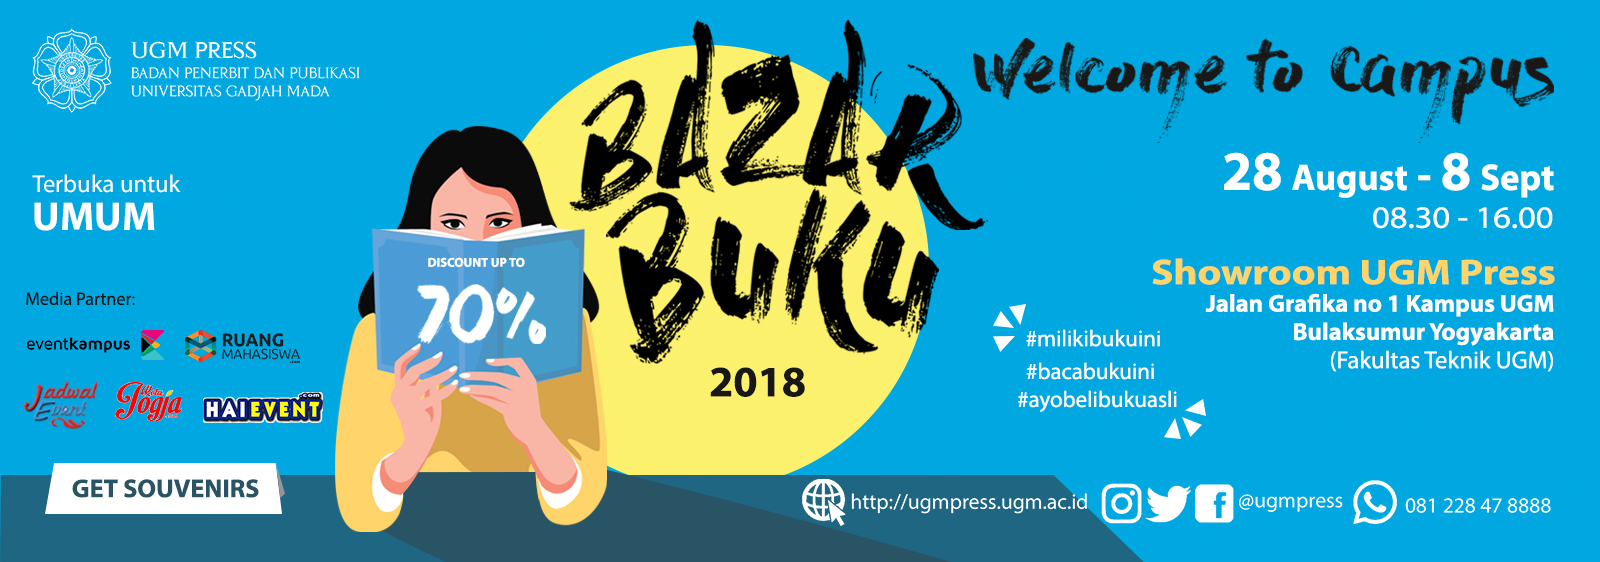 Bazar Buku Welcome to Campus - Showroom UGM Press, 28 Agustus - 08 September 20181